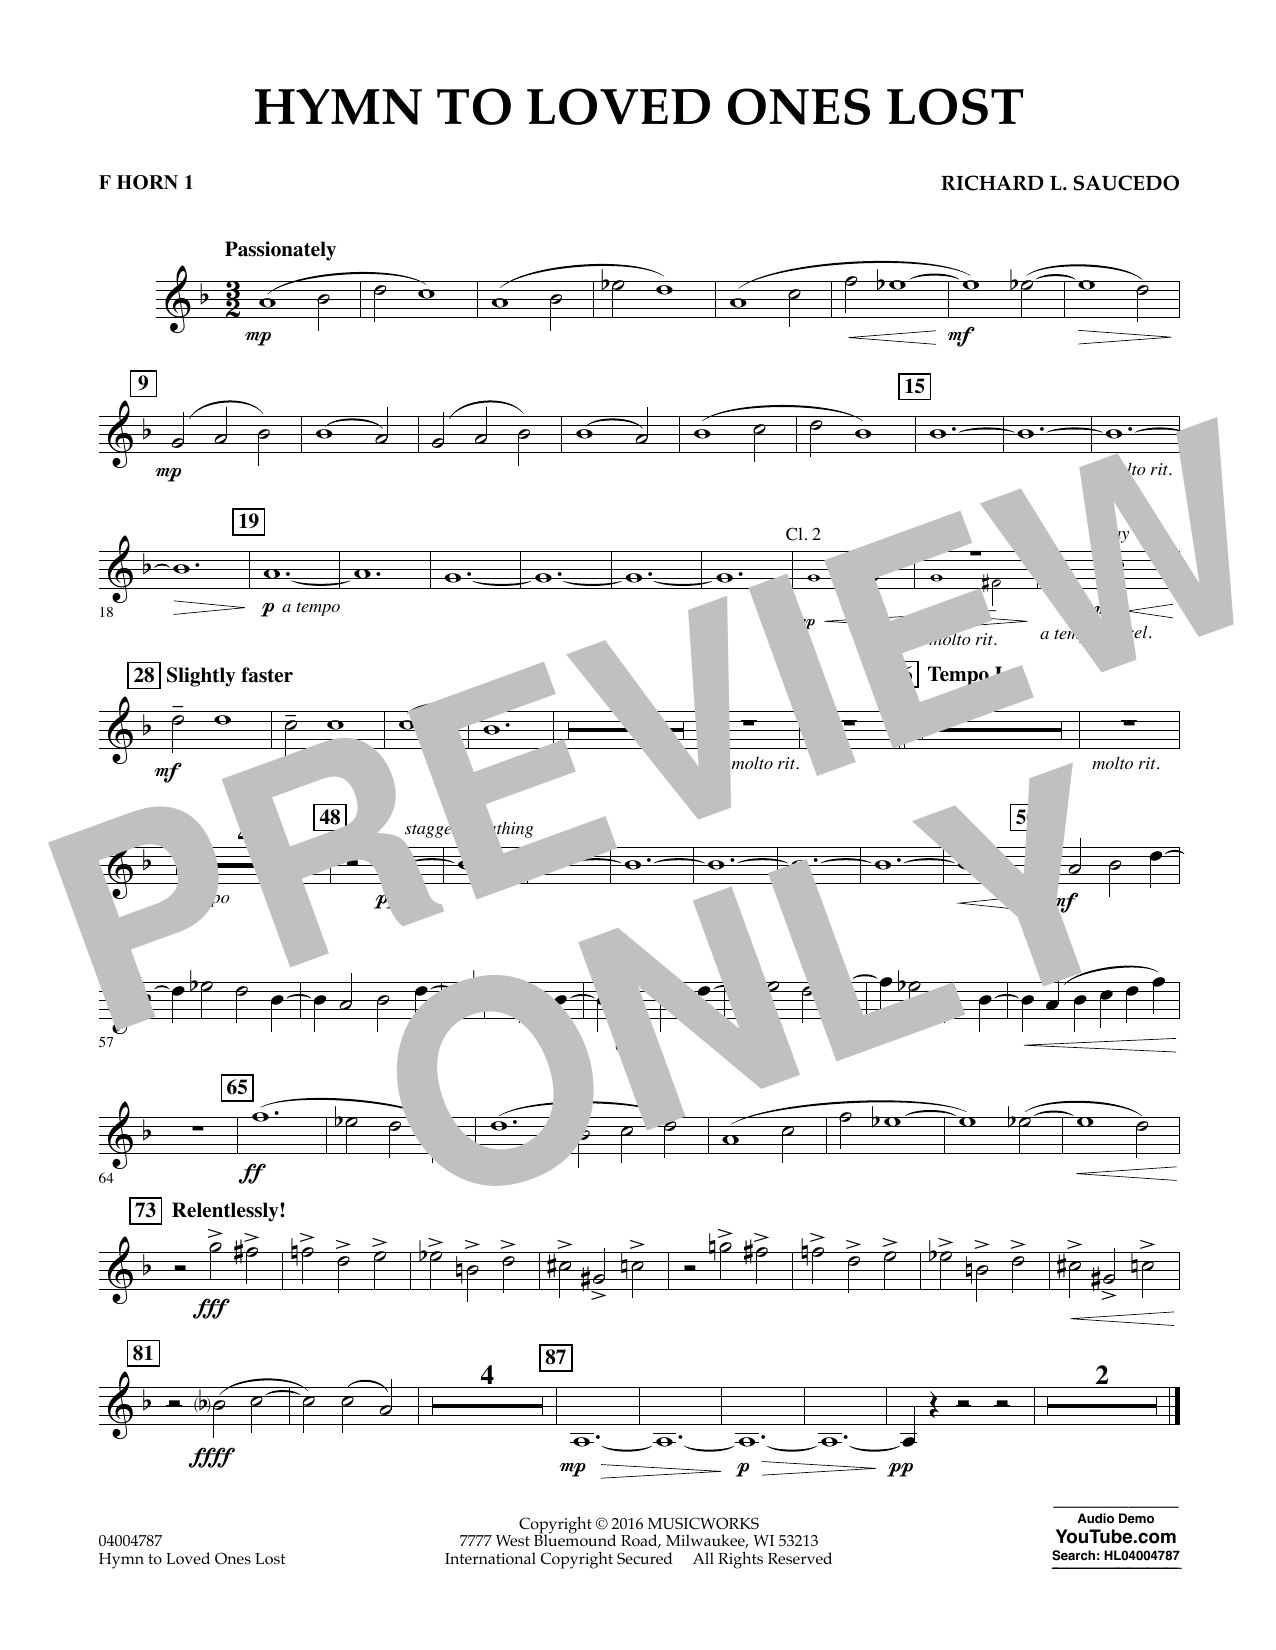 Hymn to Loved Ones Lost - F Horn 1 (Concert Band)